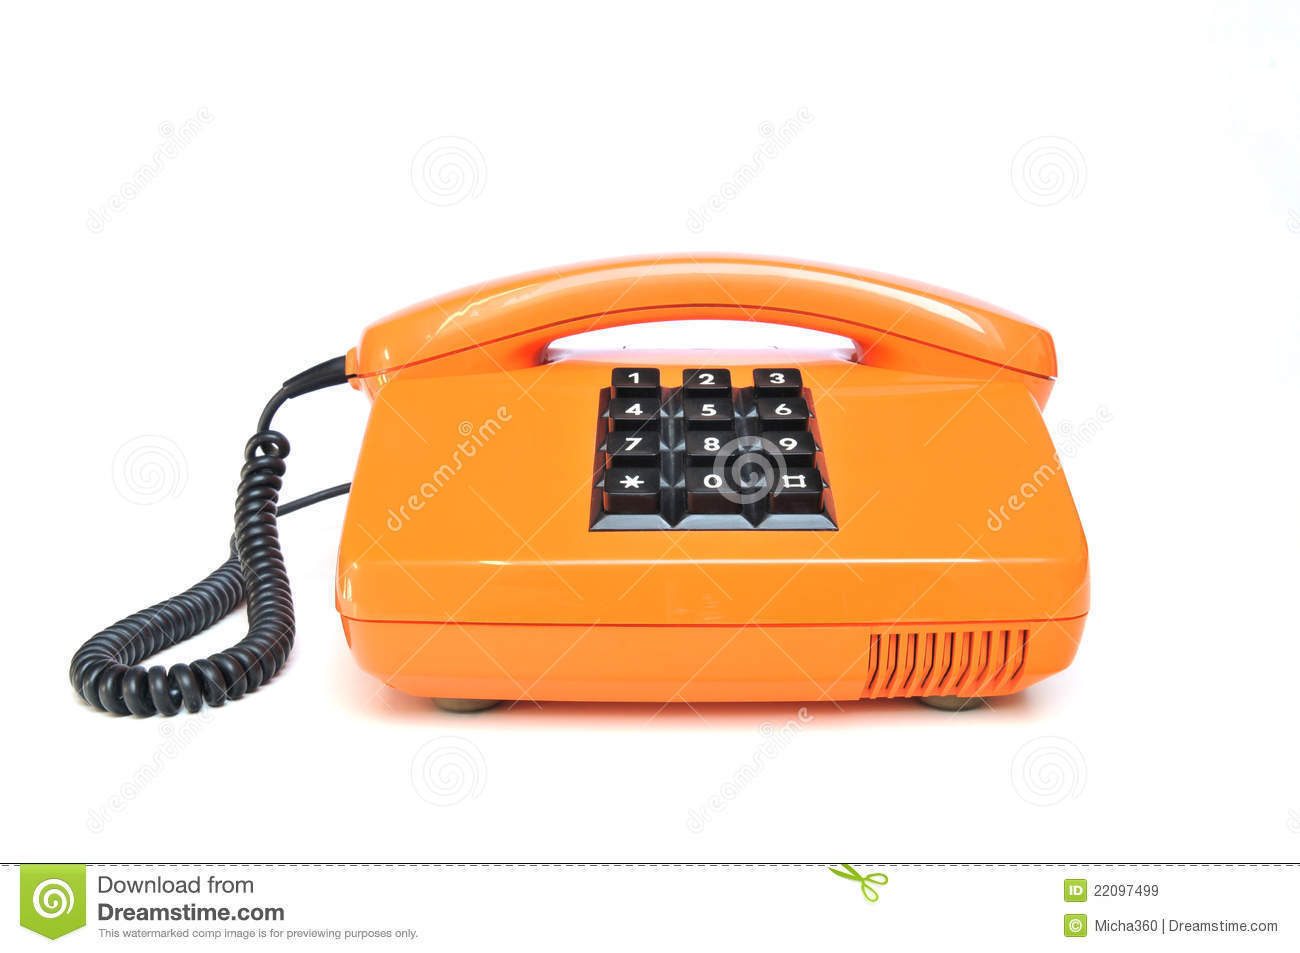 Telephone from the 80s